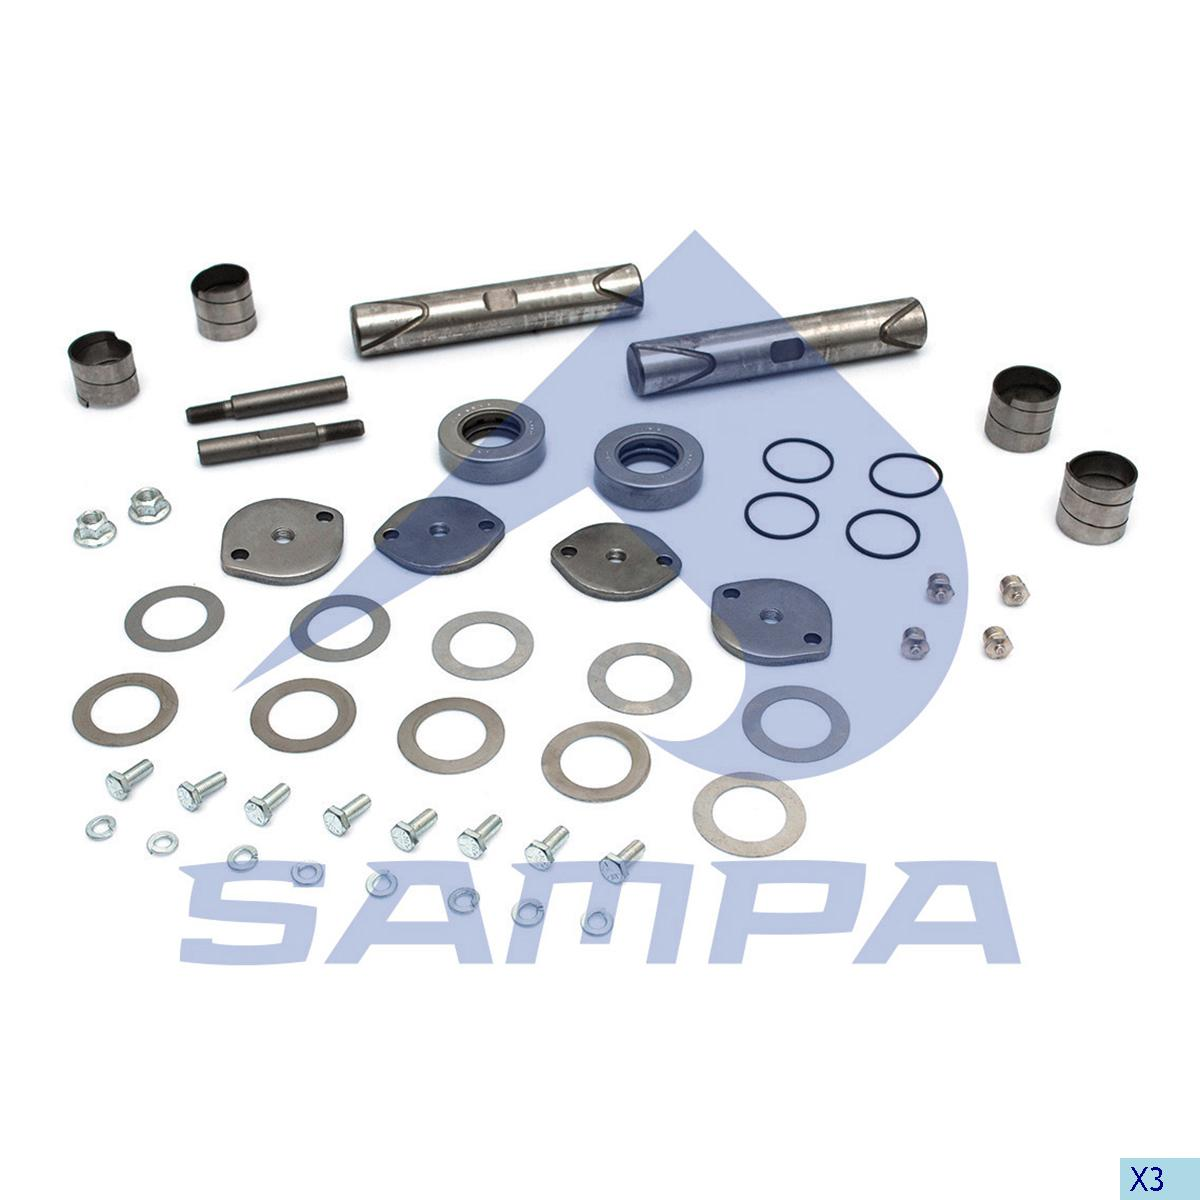 King Pin Kit, Axle Steering Knuckle, Chevrolet, Power Unit